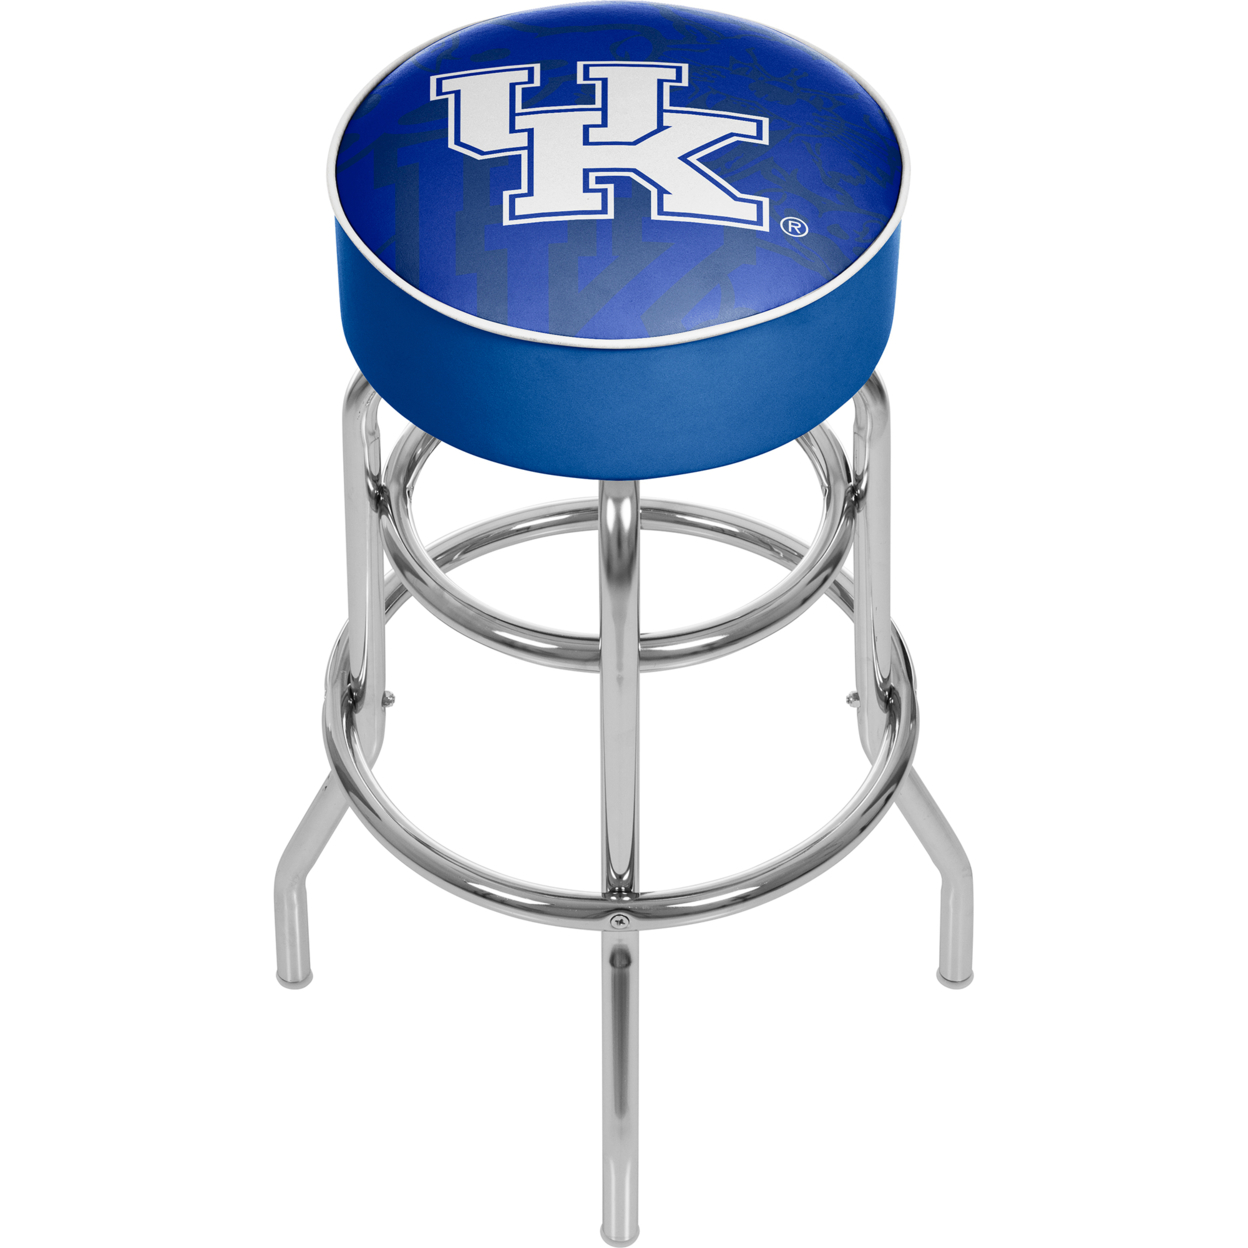 University of Kentucky - Fade Padded Swivel Bar Stool 30 Inches High